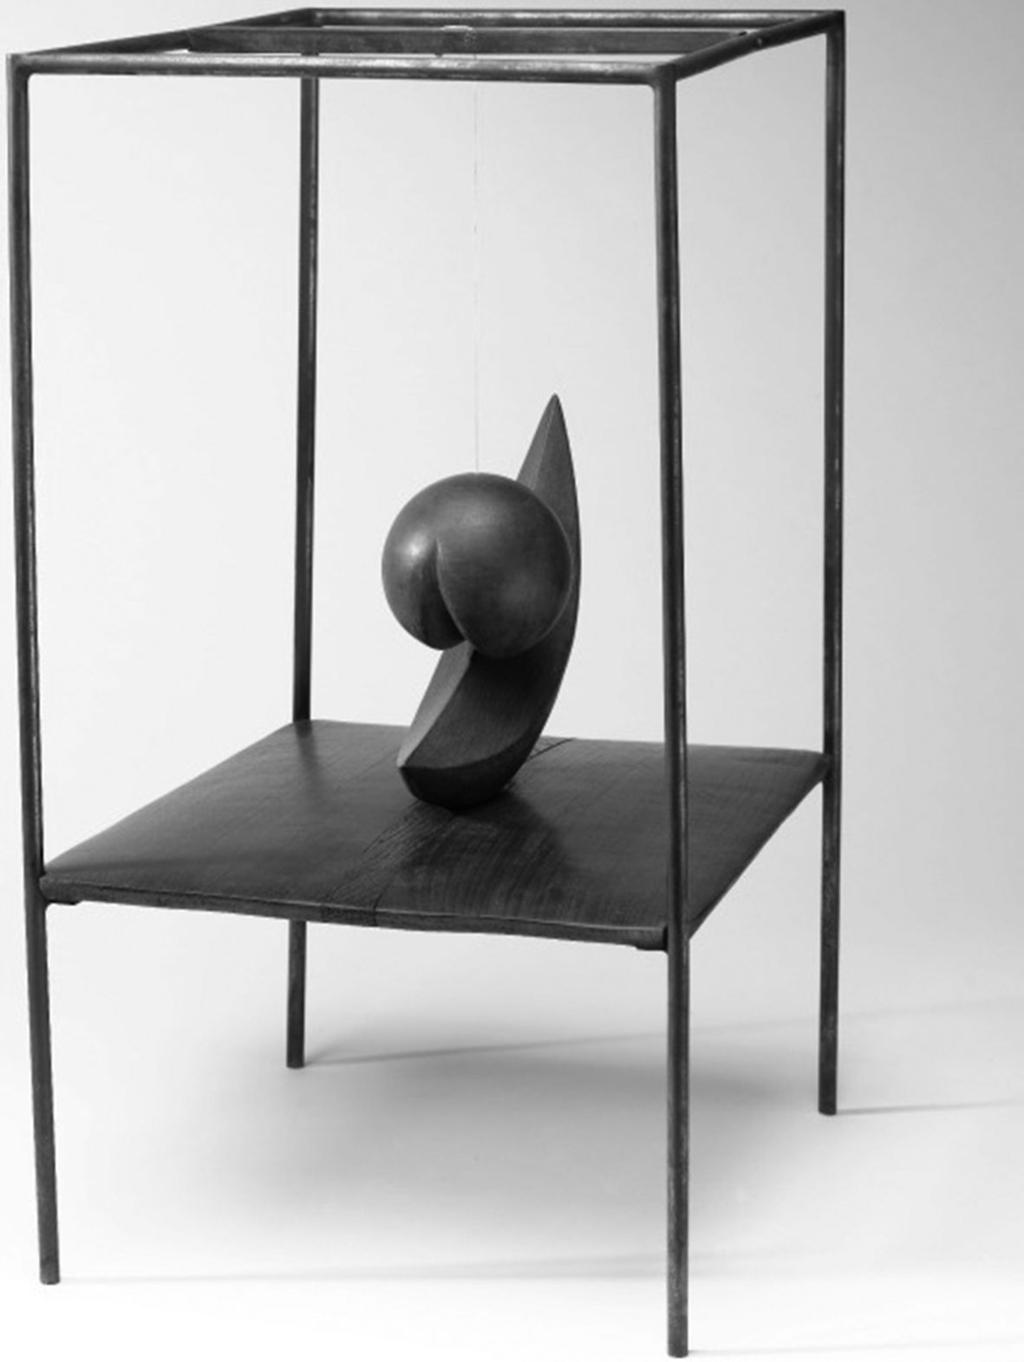 114 Raymond Spiteri Figure 3 Alberto Giacometti, Suspended Ball, 1930 31. Wood, iron and string, 60.4 cm 36.5 cm 34 cm. Musée nationale de l art moderne Centre Georges Pompidou, Paris.